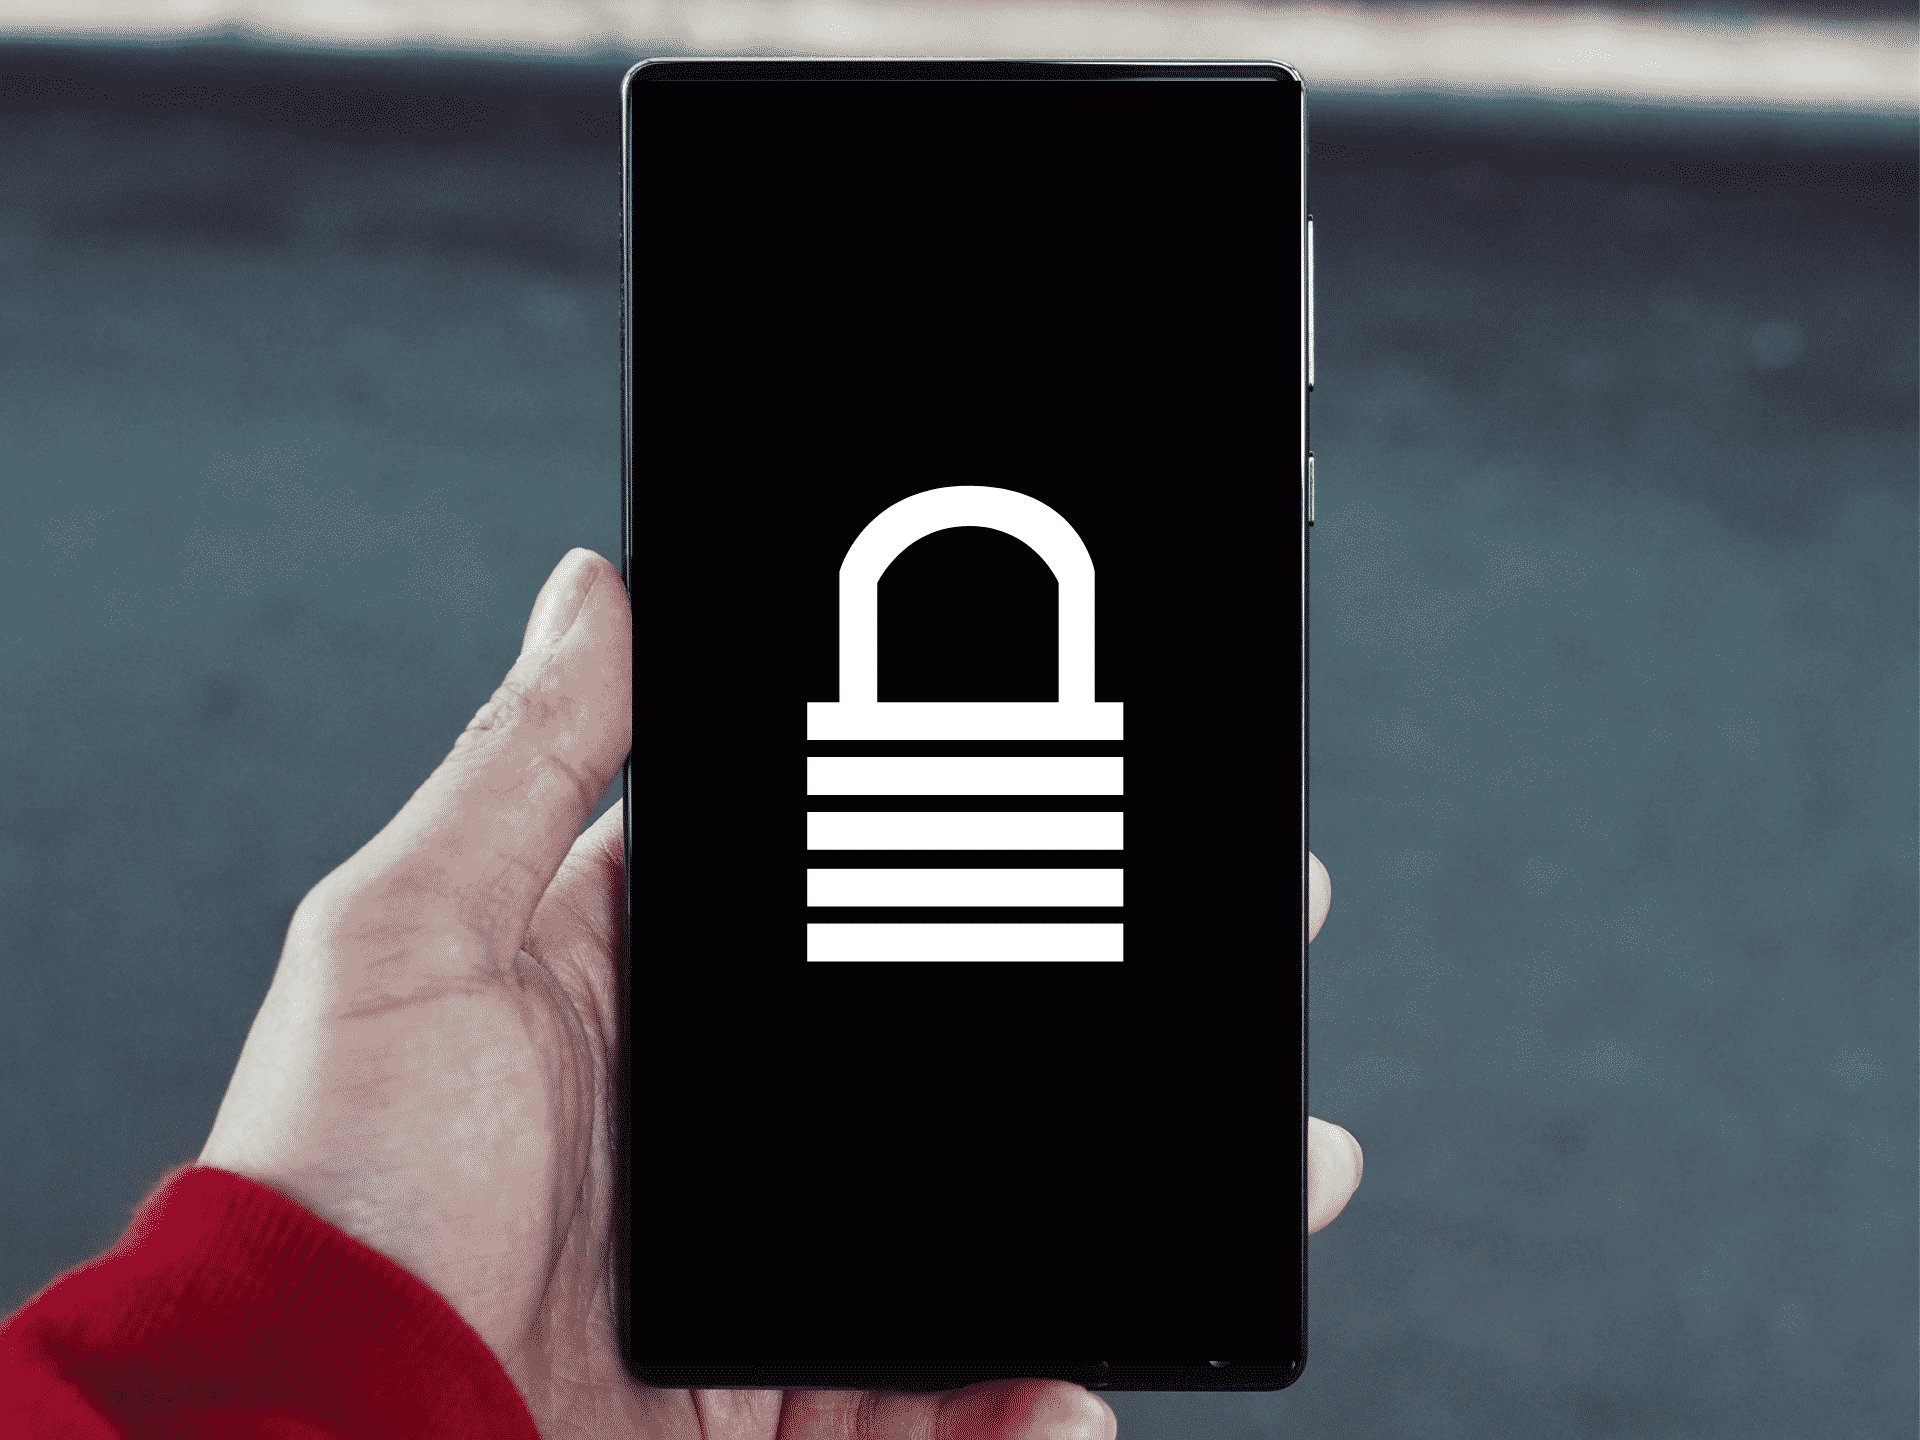 unlock-android-phone-featured-image